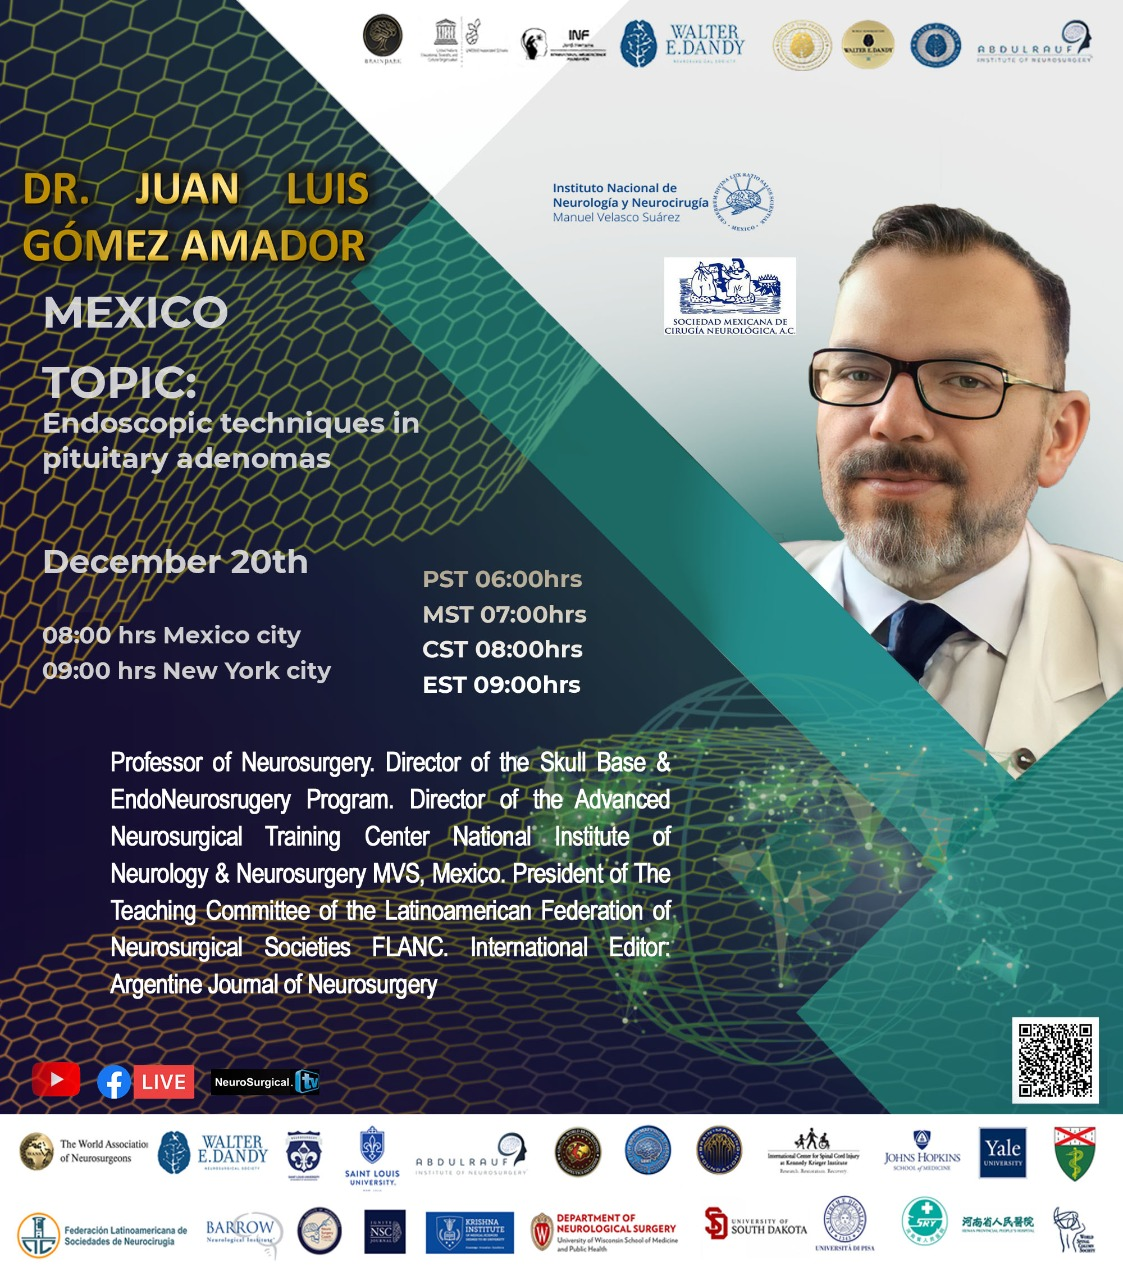 NOW, LIVE, UNESCO/Walter Dandy resume conference with presentations today, starting with Juann Luis Gomez Amador MD of Mexico